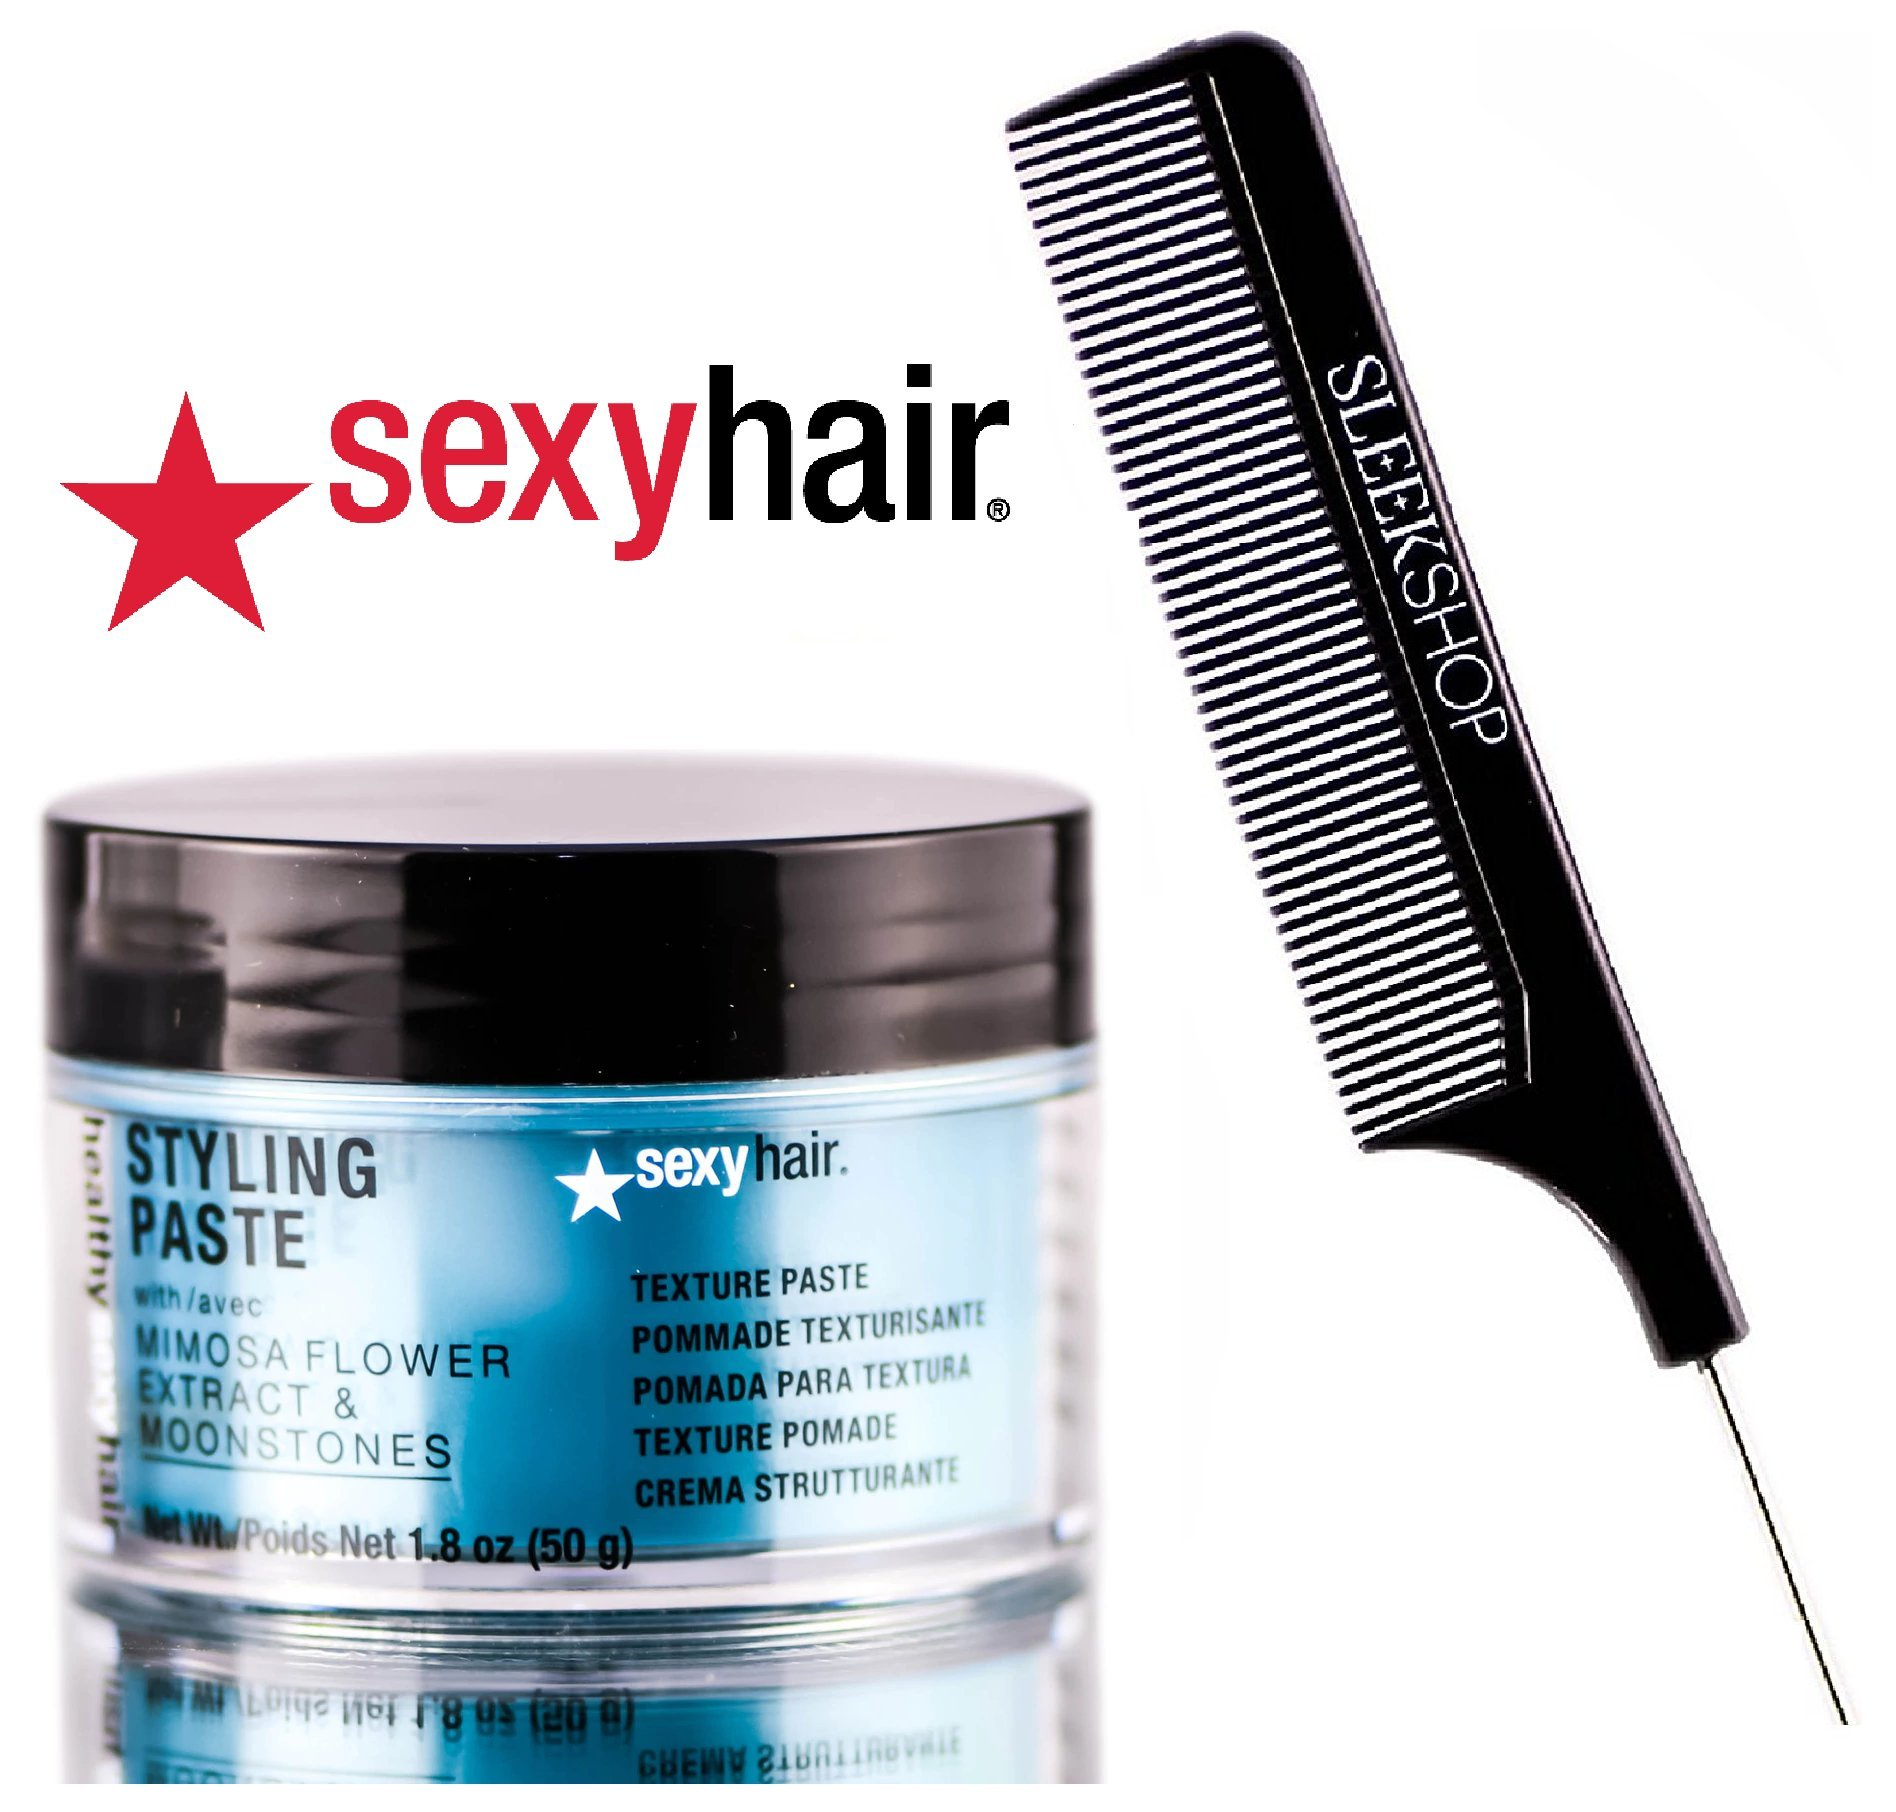 Healthy Sexy Hair STYLING PASTE (previously Soy Paste) Mimosa Flower & Moonstones TEXTURE POMADE (with Sleek Steel Pin Tail Comb) (1.8 oz / 50 g)